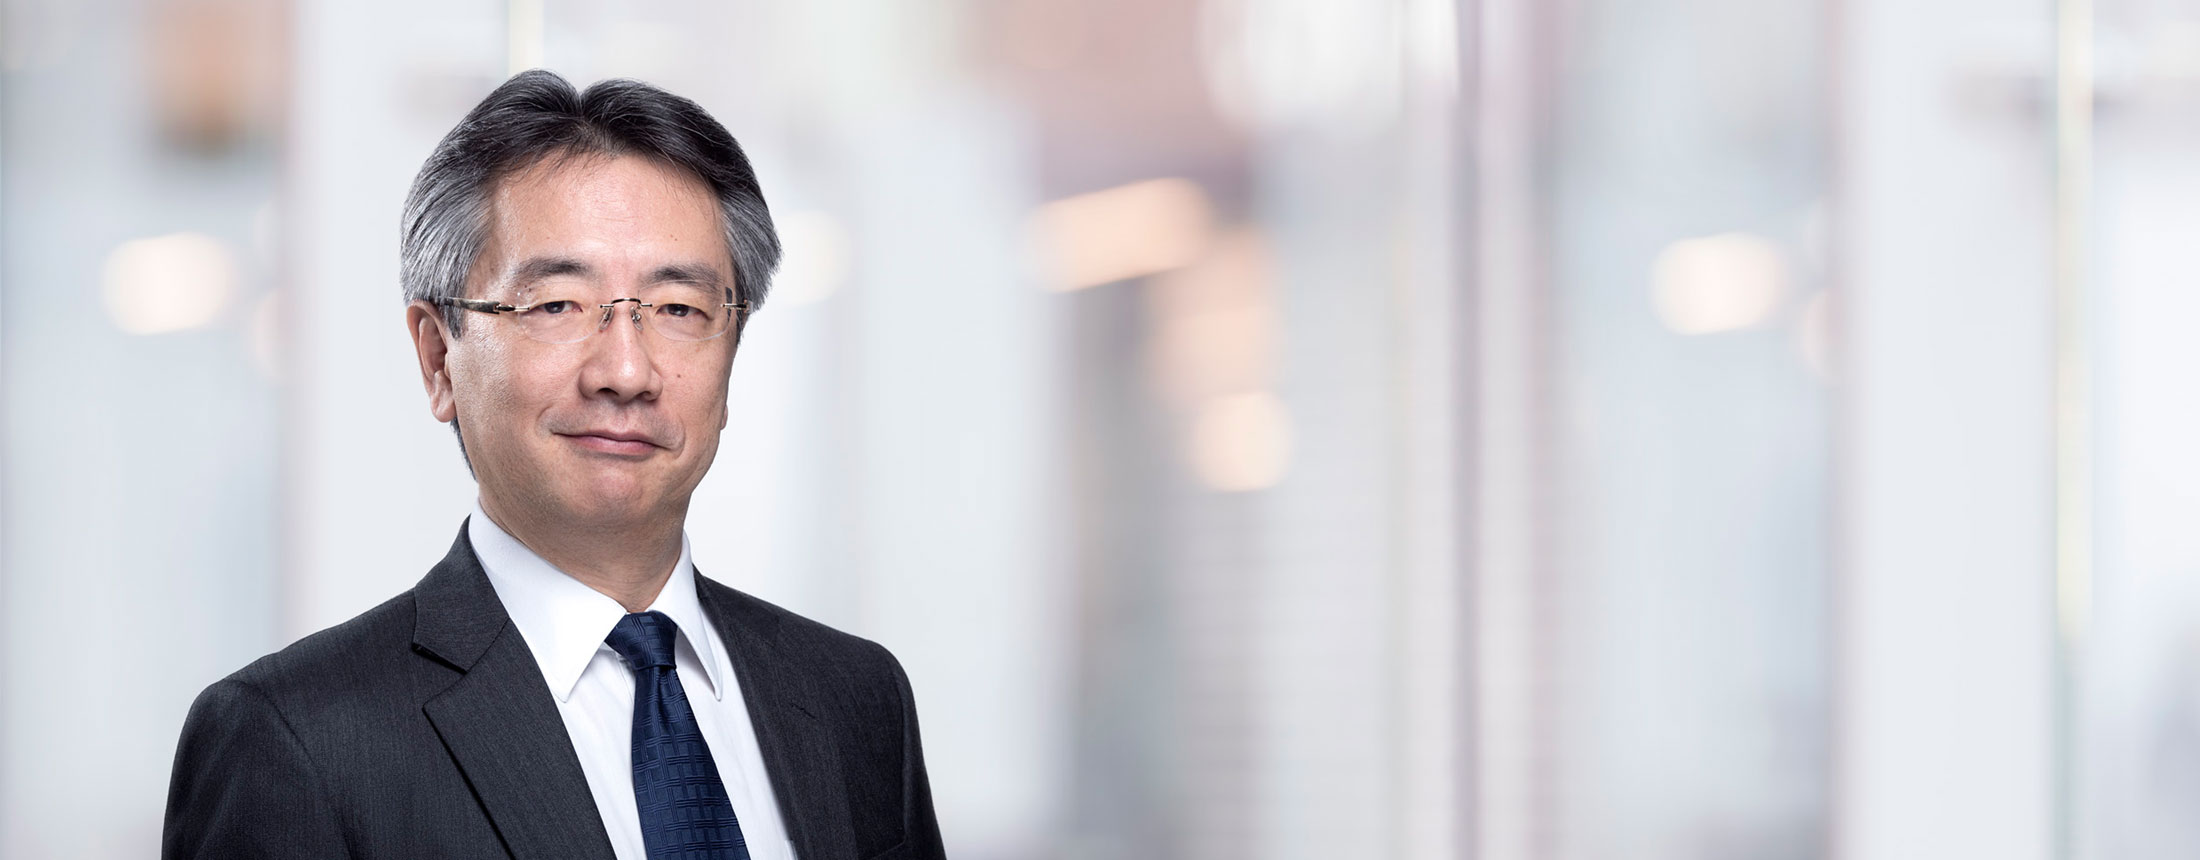 MUFG CEO EMEA media news Masahiro Kuwahare